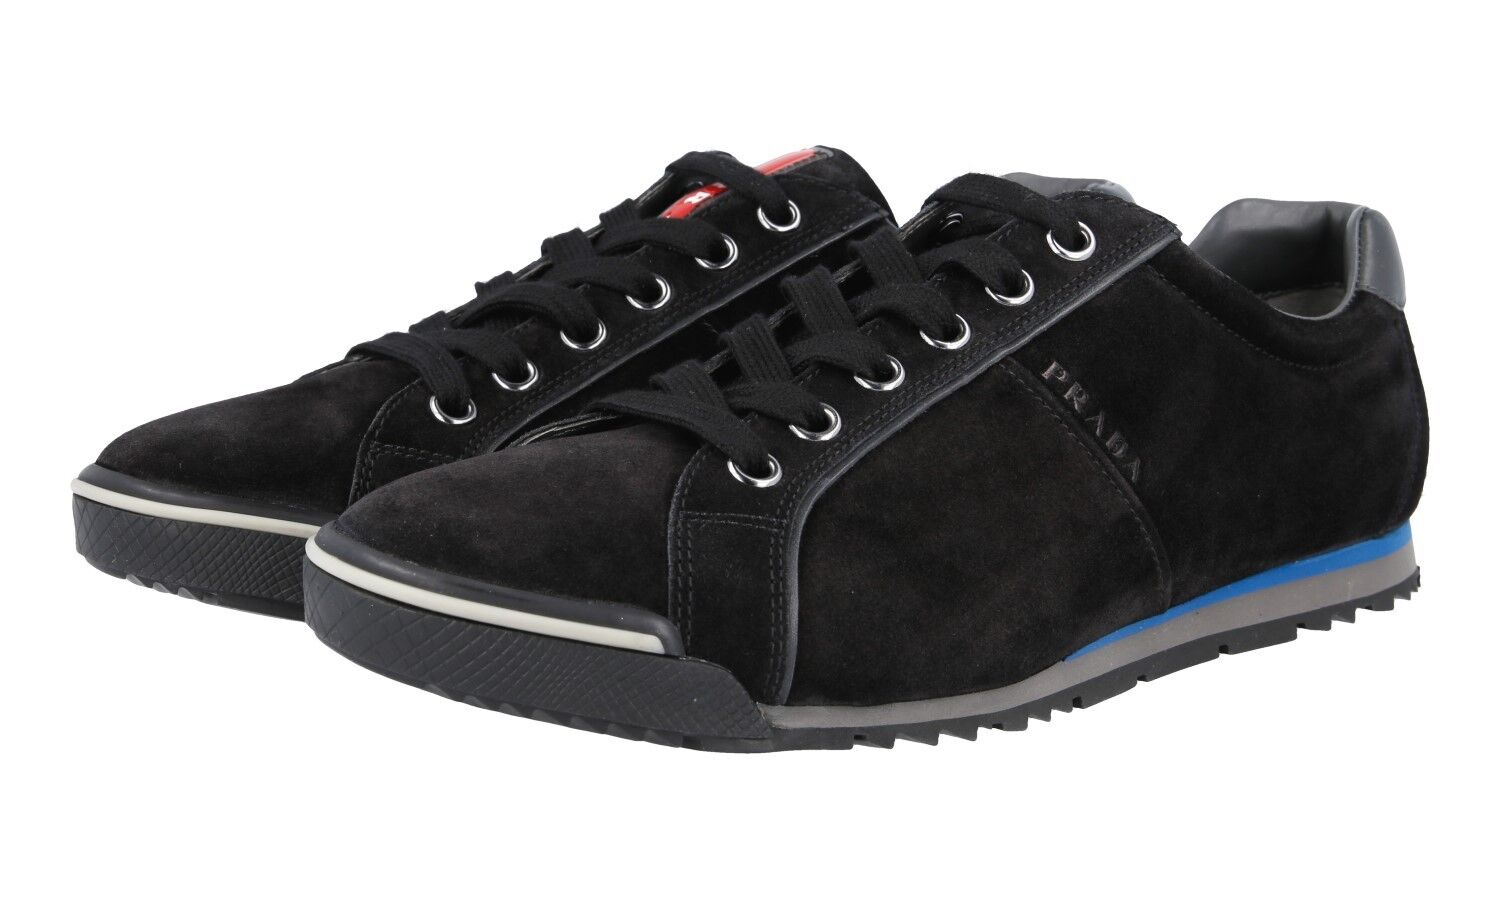 AUTH LUXURY PRADA SNEAKERS SHOES 4E2719 BLACK SUEDE NEW US 8